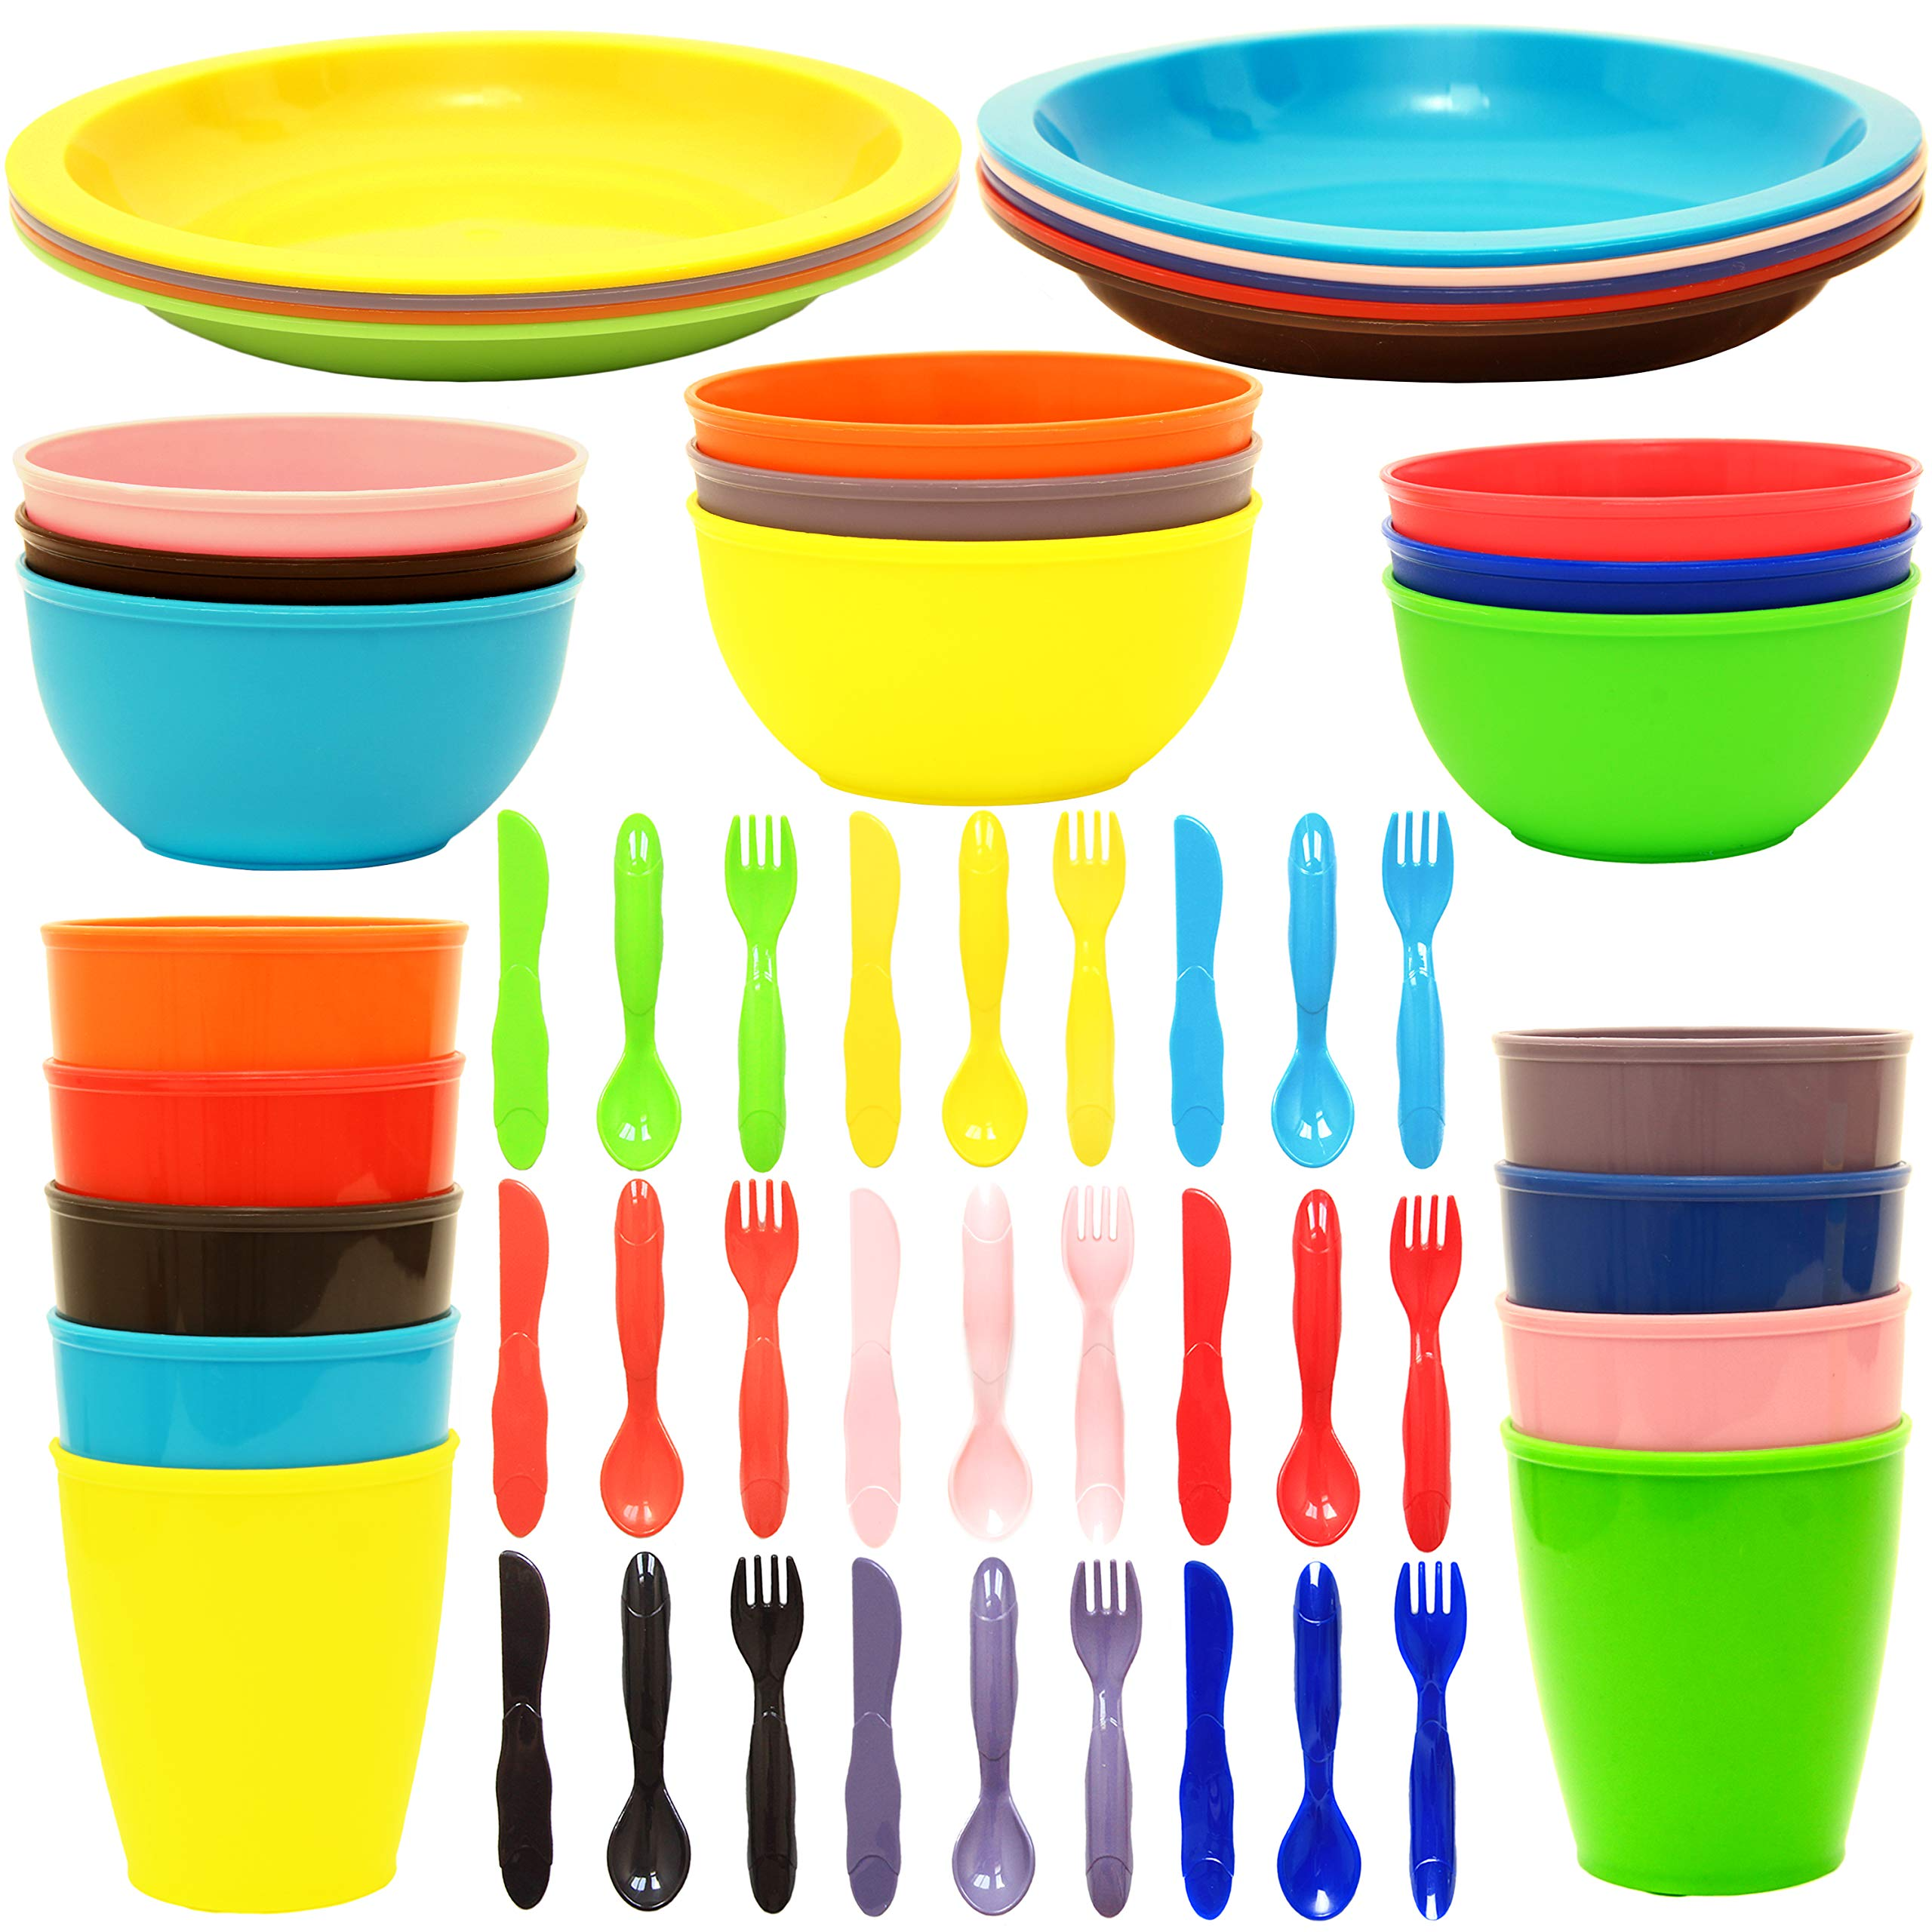 Youngever 54 pcs Plastic Kids Dinnerware Set, Toddler Dining Set, Cups, Kids Plates, Kids Bowls, Flatware Set, Kids Dishes Set, Set of 9 in 9 Assorted Colors by Youngever